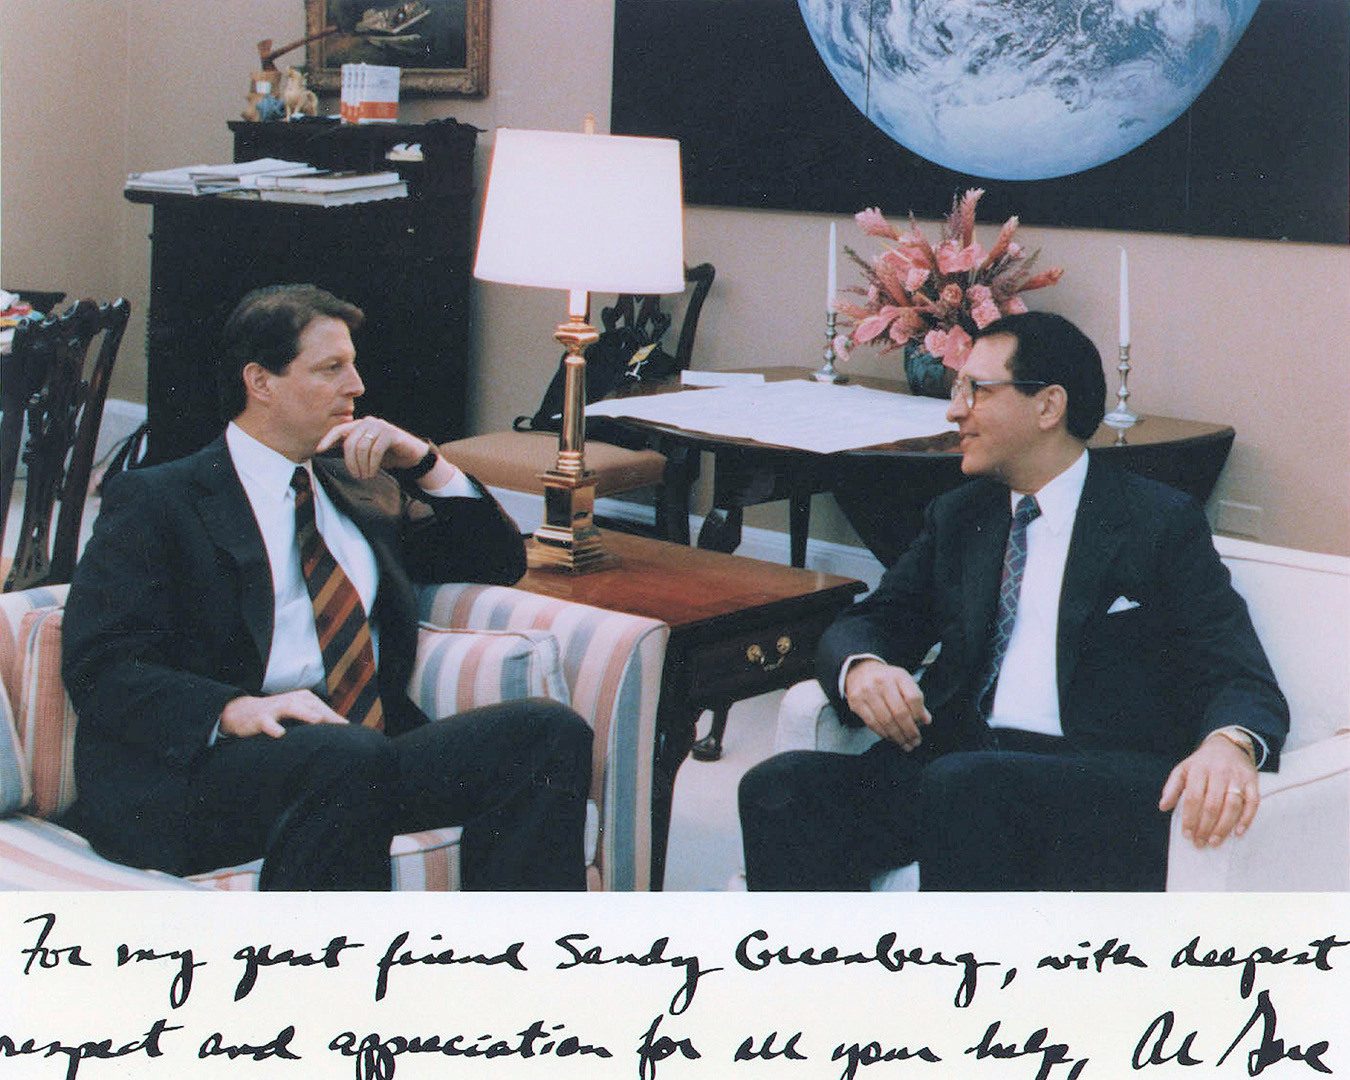 "With then-Vice President Al Gore. The inscription reads: ""For my great friend Sandy Greenberg, with deepest respect and appreciation for all your help."""